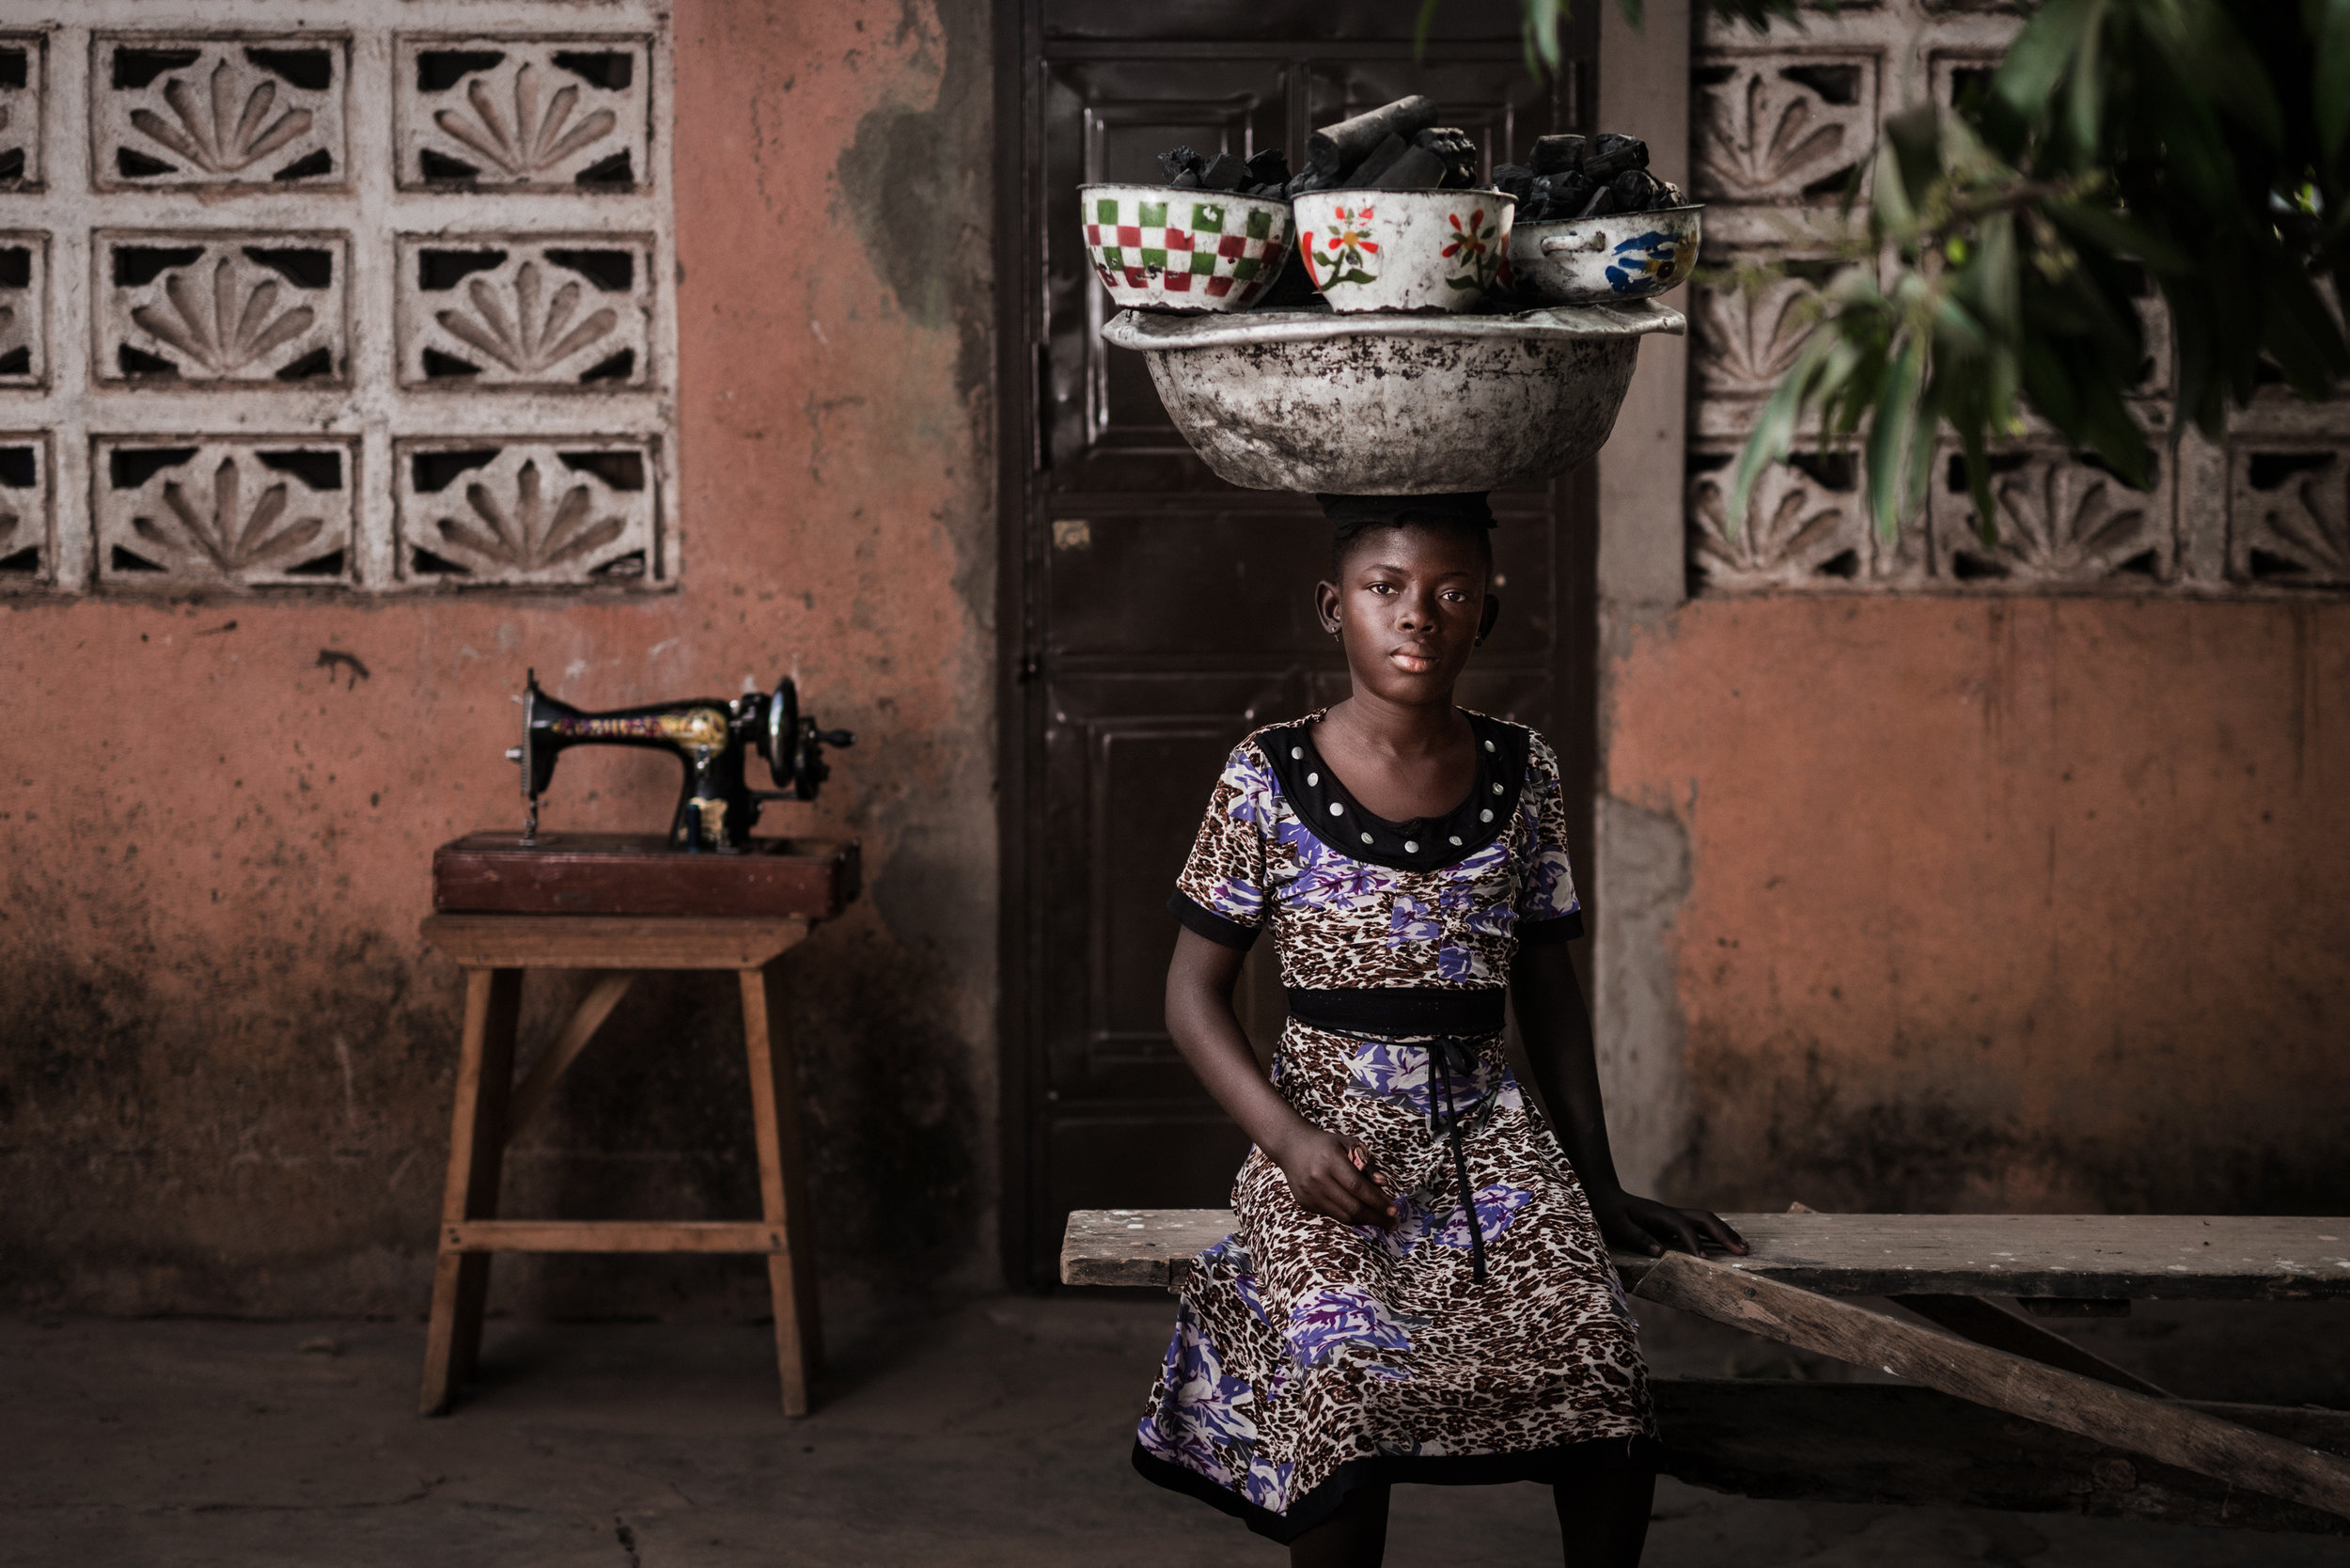 TaraShupe_HumanitarianPhotographer_Woman_Photographer_National_Geographic_Ghana_Women_067.jpg